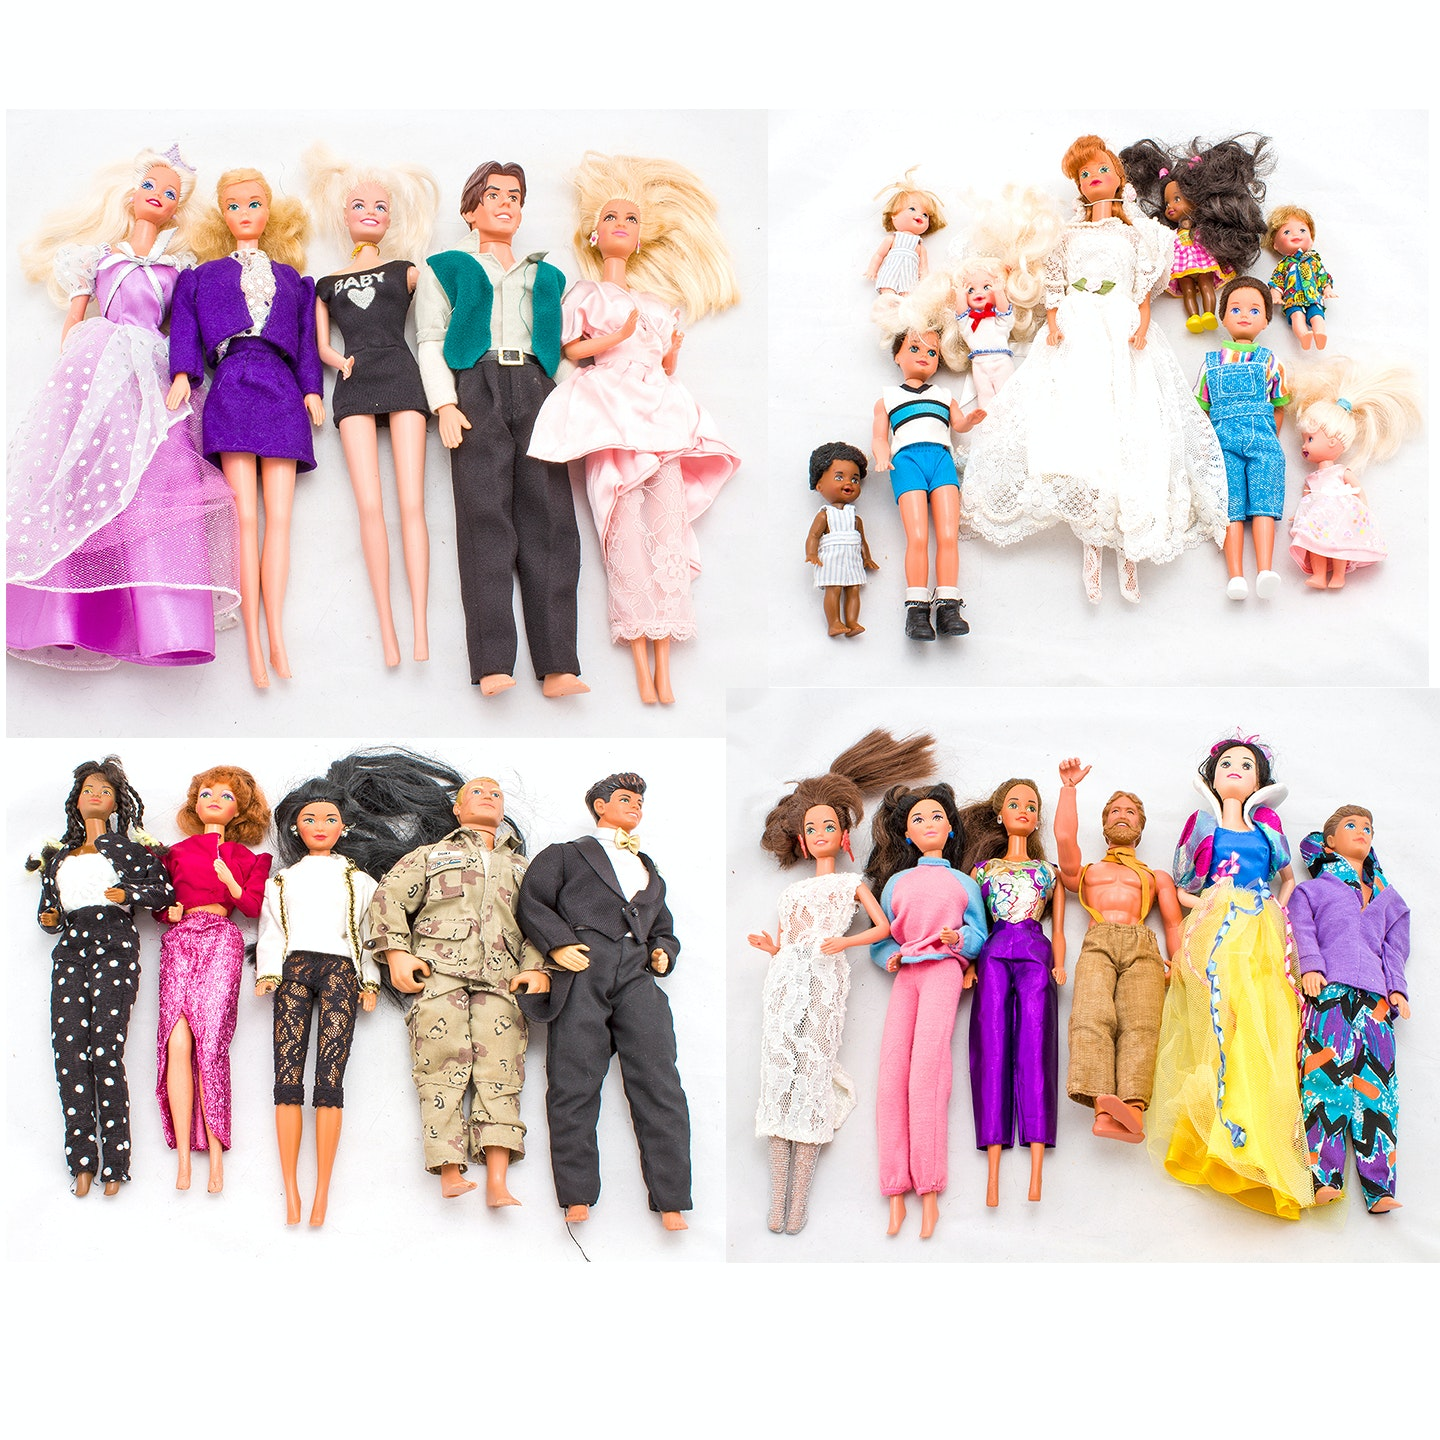 Vintage Barbies, Dolls and Clothing, 1970s-1980s